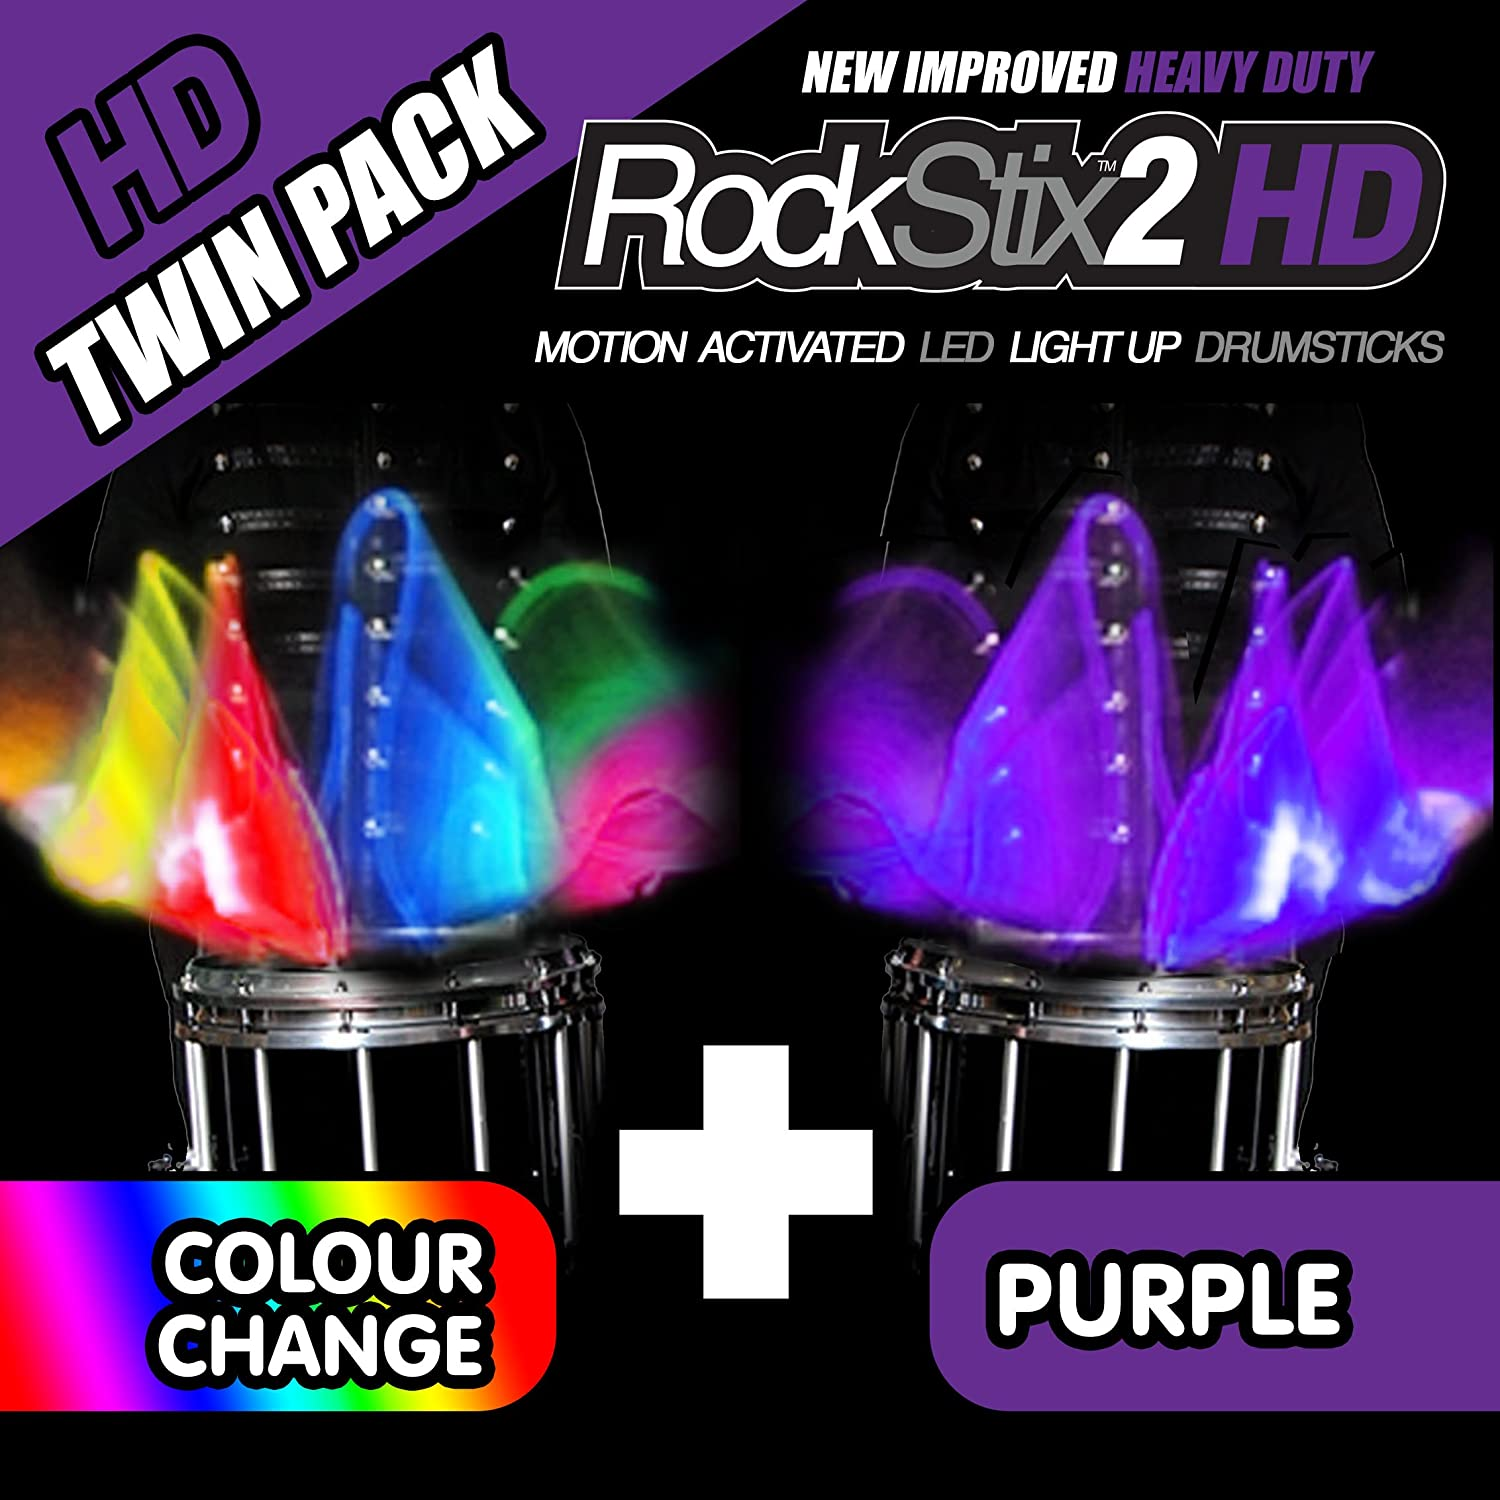 BRIGHT LED LIGHT UP DRUMSTICKS ROCKSTIX 2 HD DEEP PURPLE with fade effect Set your gig on fire!